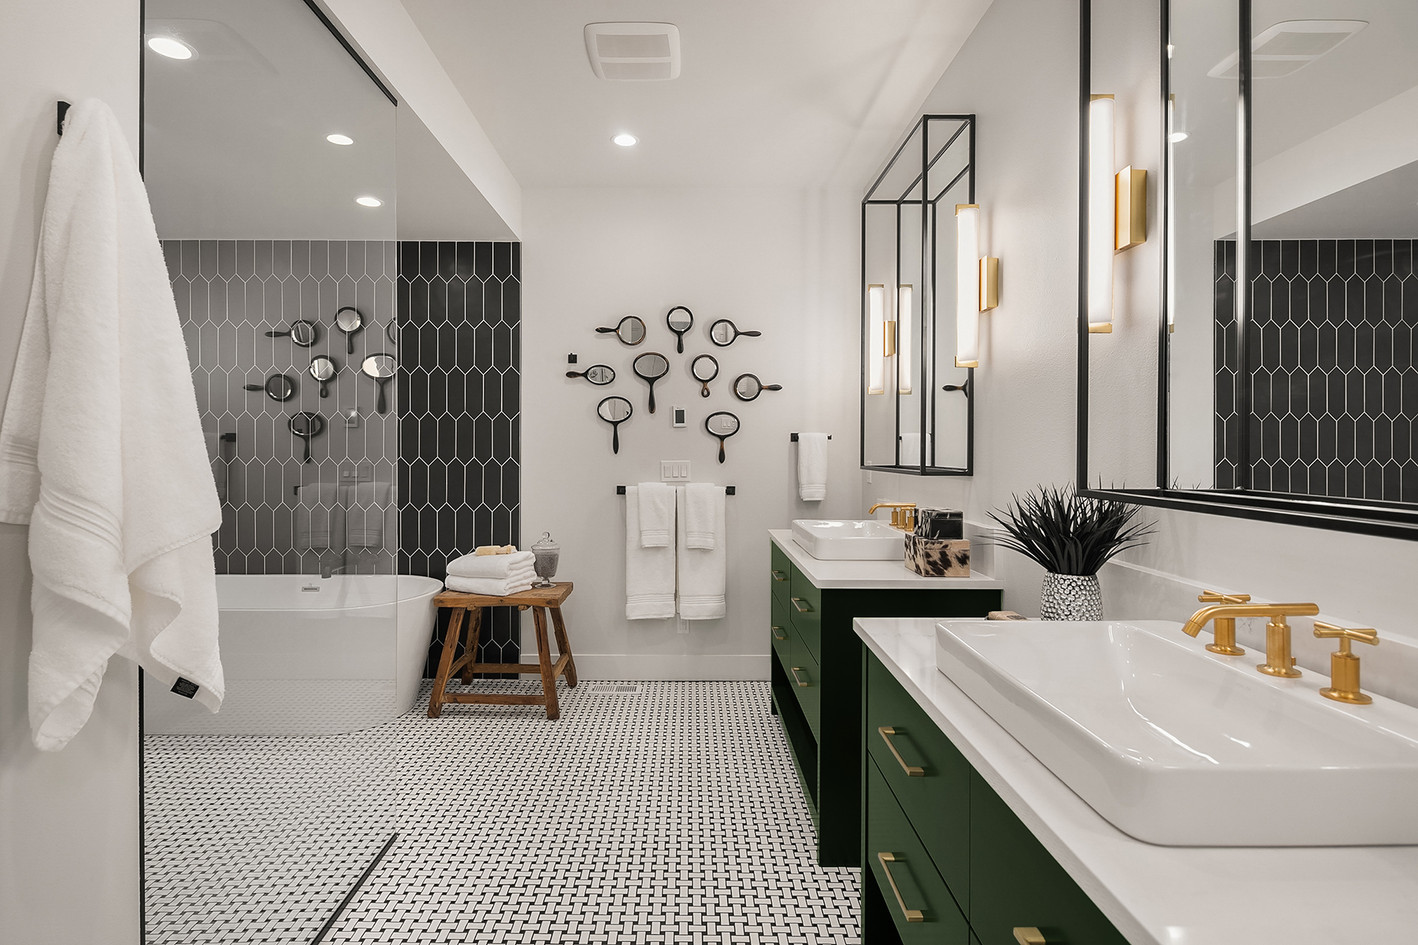 Farmhouse black and white bath.jpg